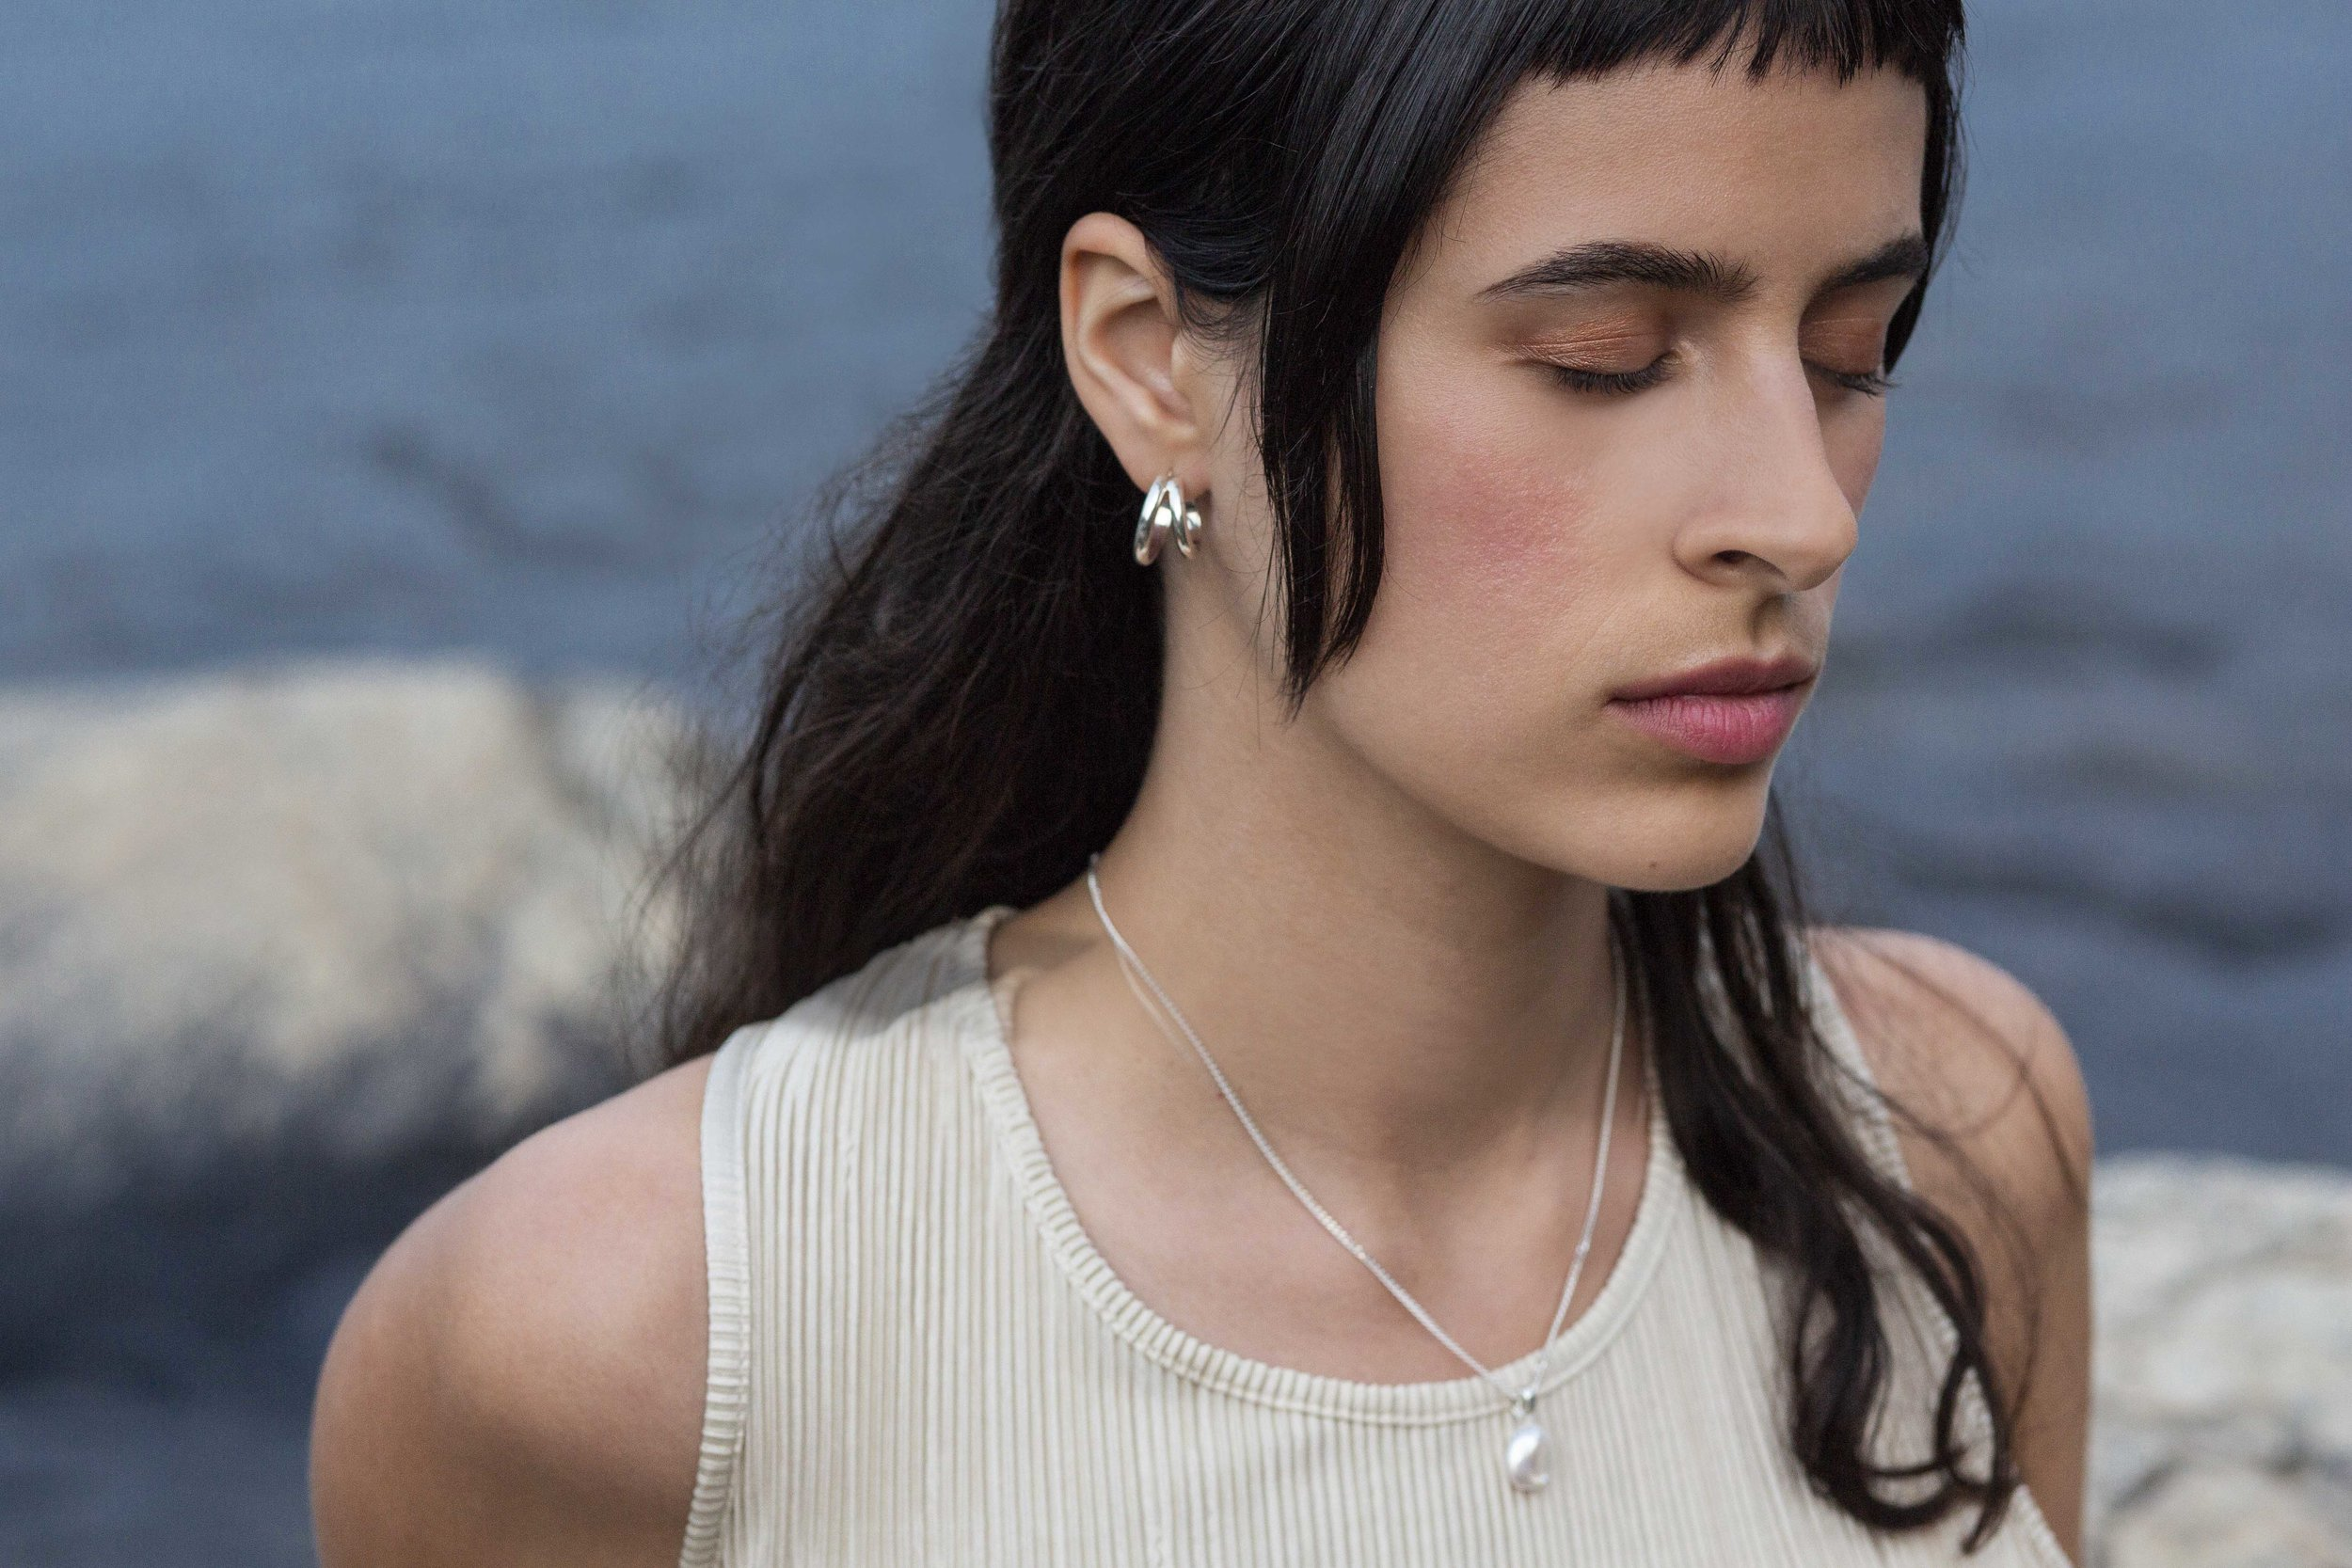 ▲ ONDE earrings ▲ SUZA necklace